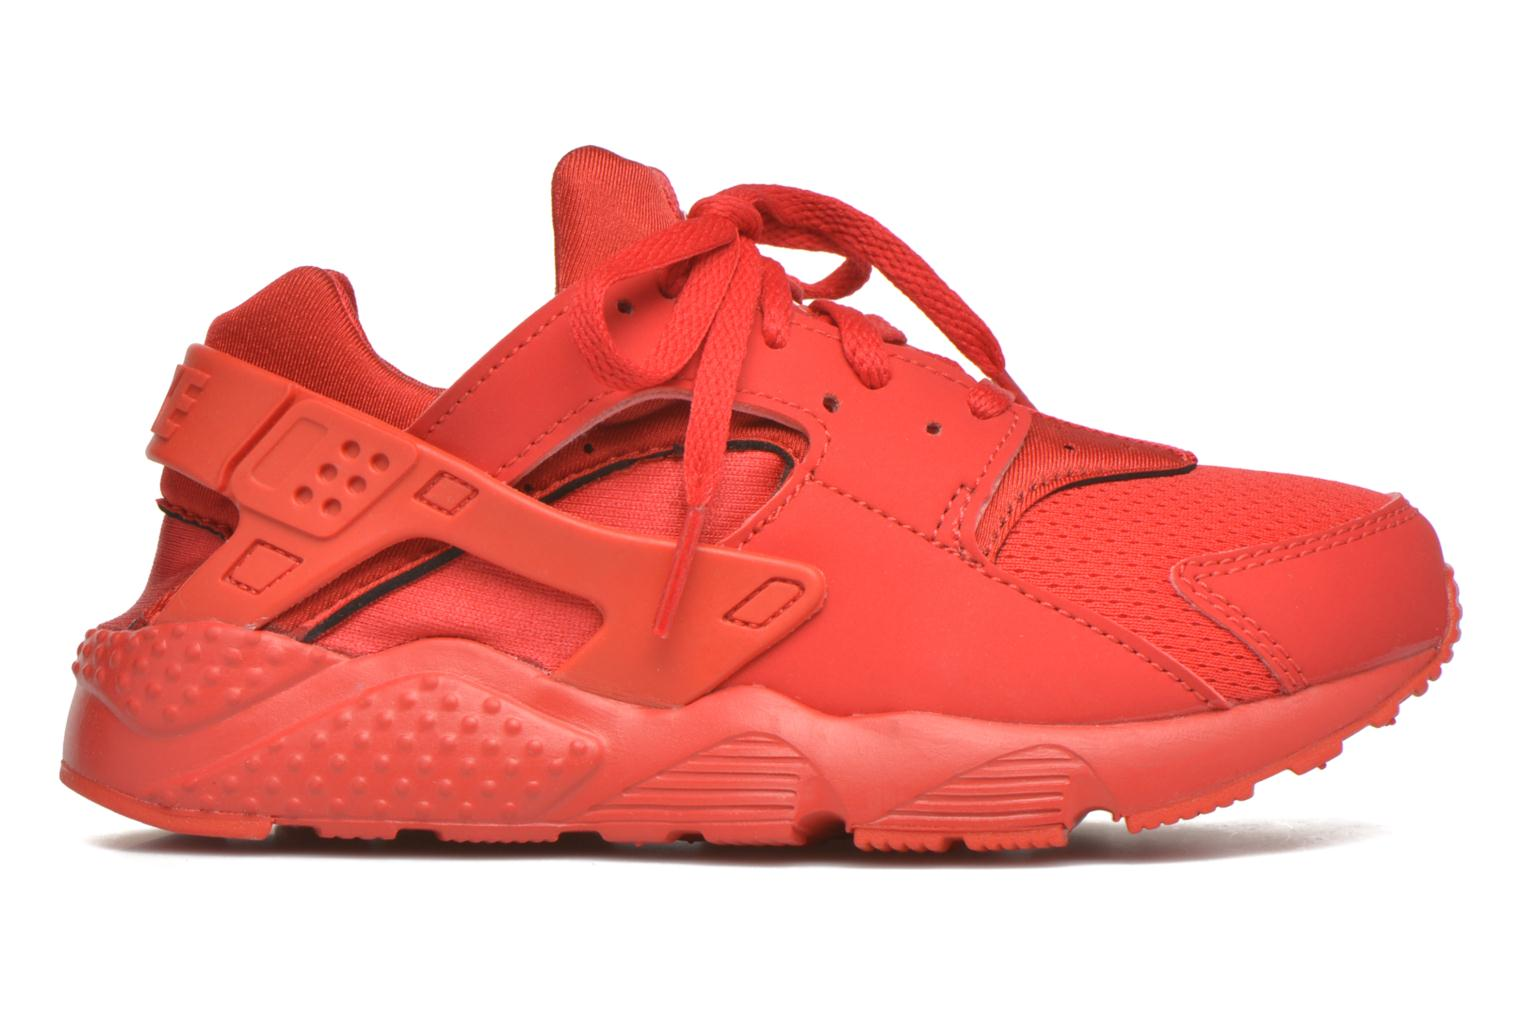 Nike Huarache Run (Ps) Unvrsty Rd Unvrsty Rd-Unvrsty